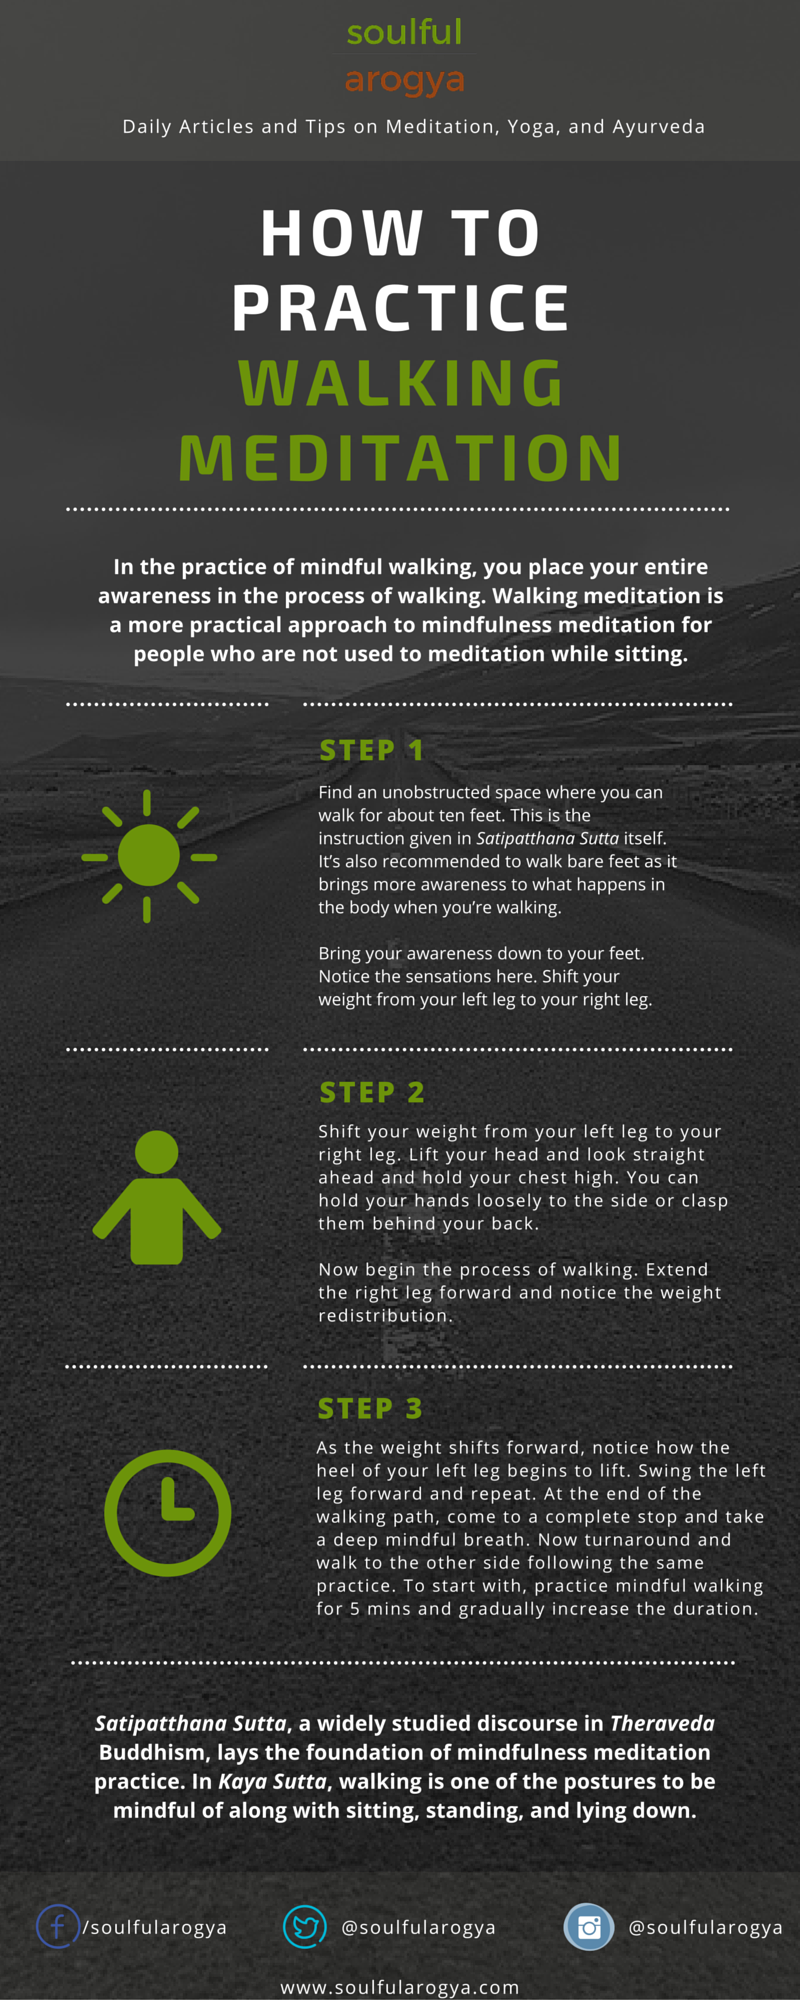 How to Practice Walking Meditation #infographic